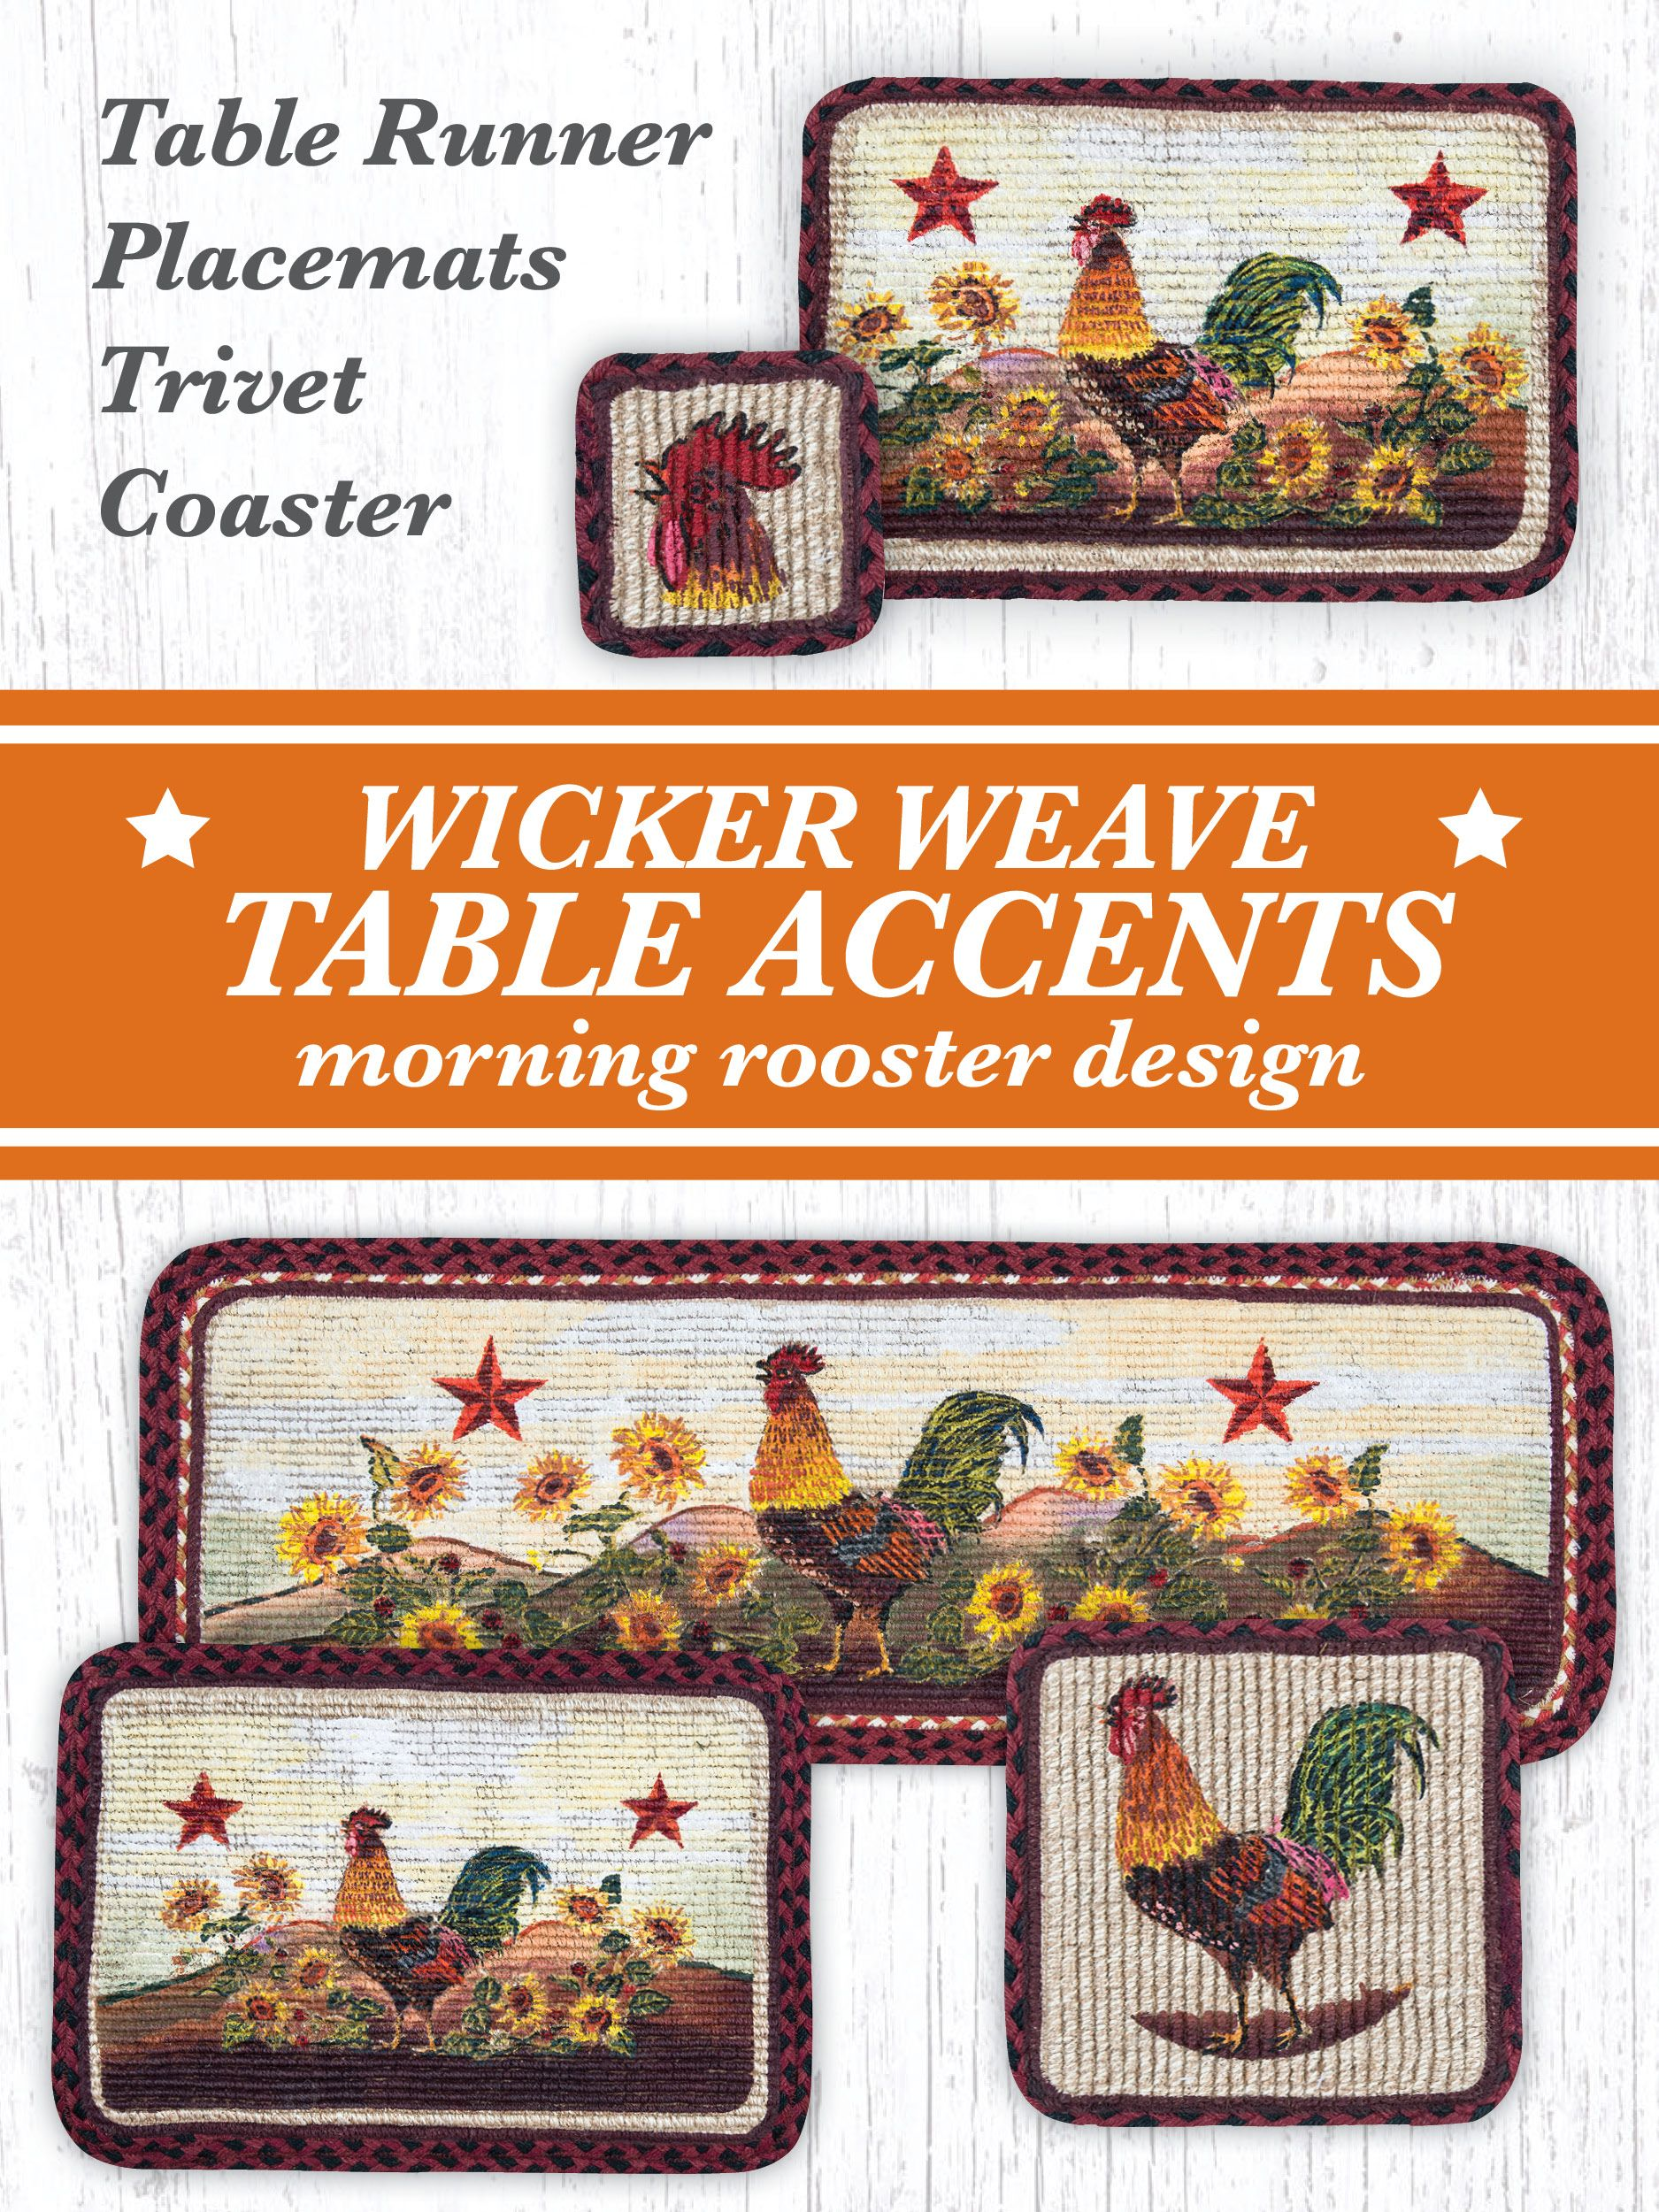 morning rooster wicker weave table accents farm and country accent placemat braided jute with design perfect kitchen decor setting ethan allen leather furniture triangle lime